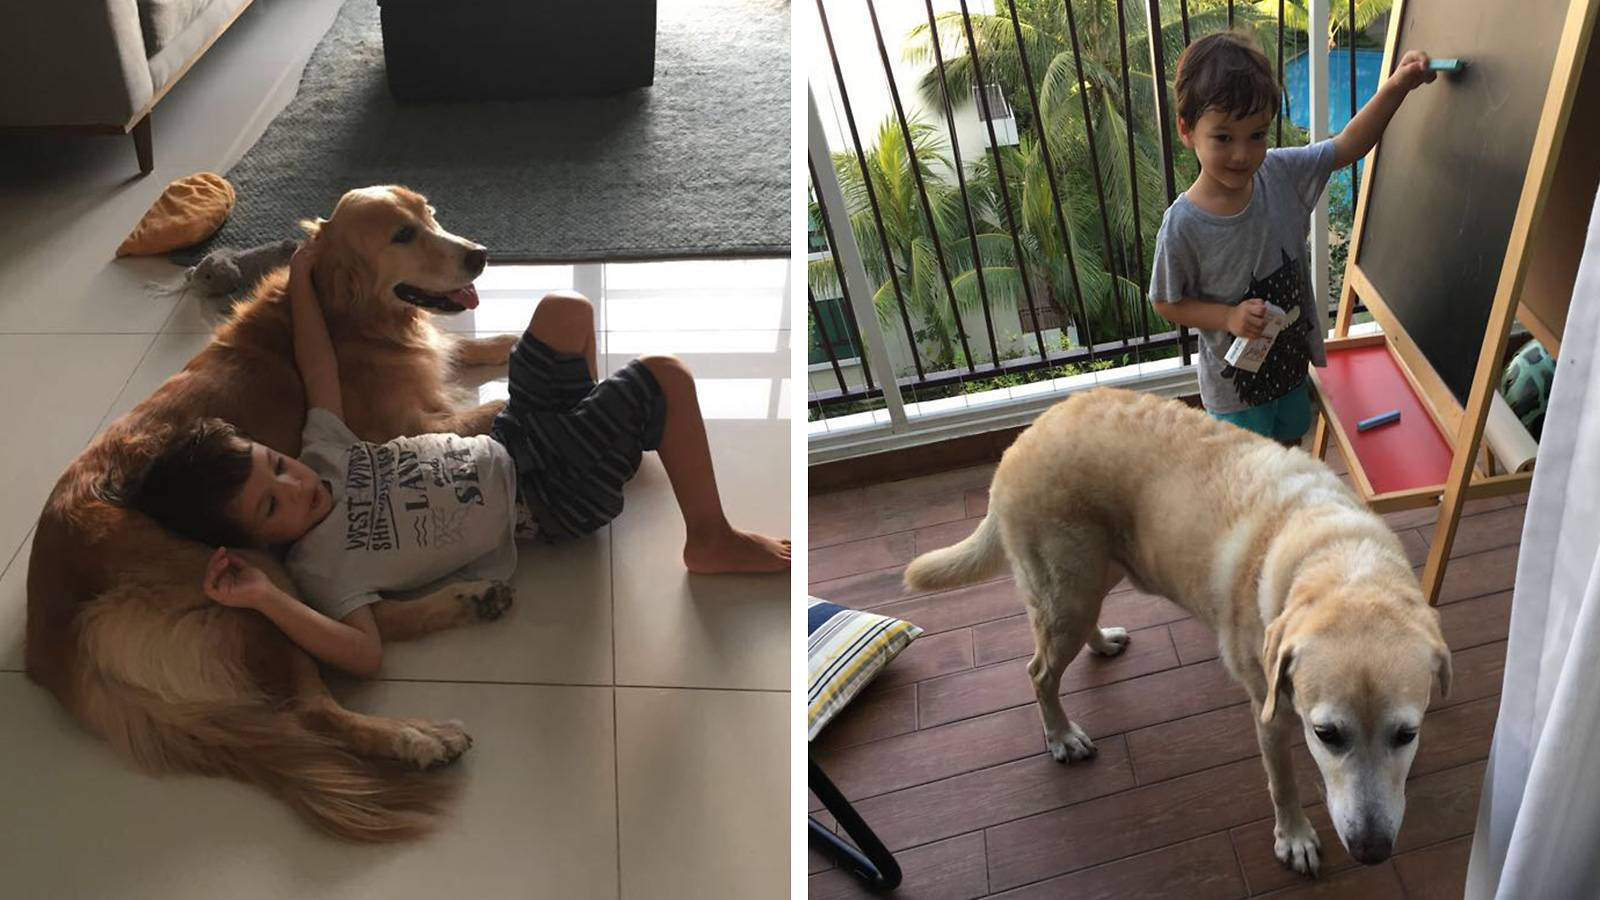 Tots-MUM-SAYS-Having-dogs-has-taught-my-kids-empathy-3